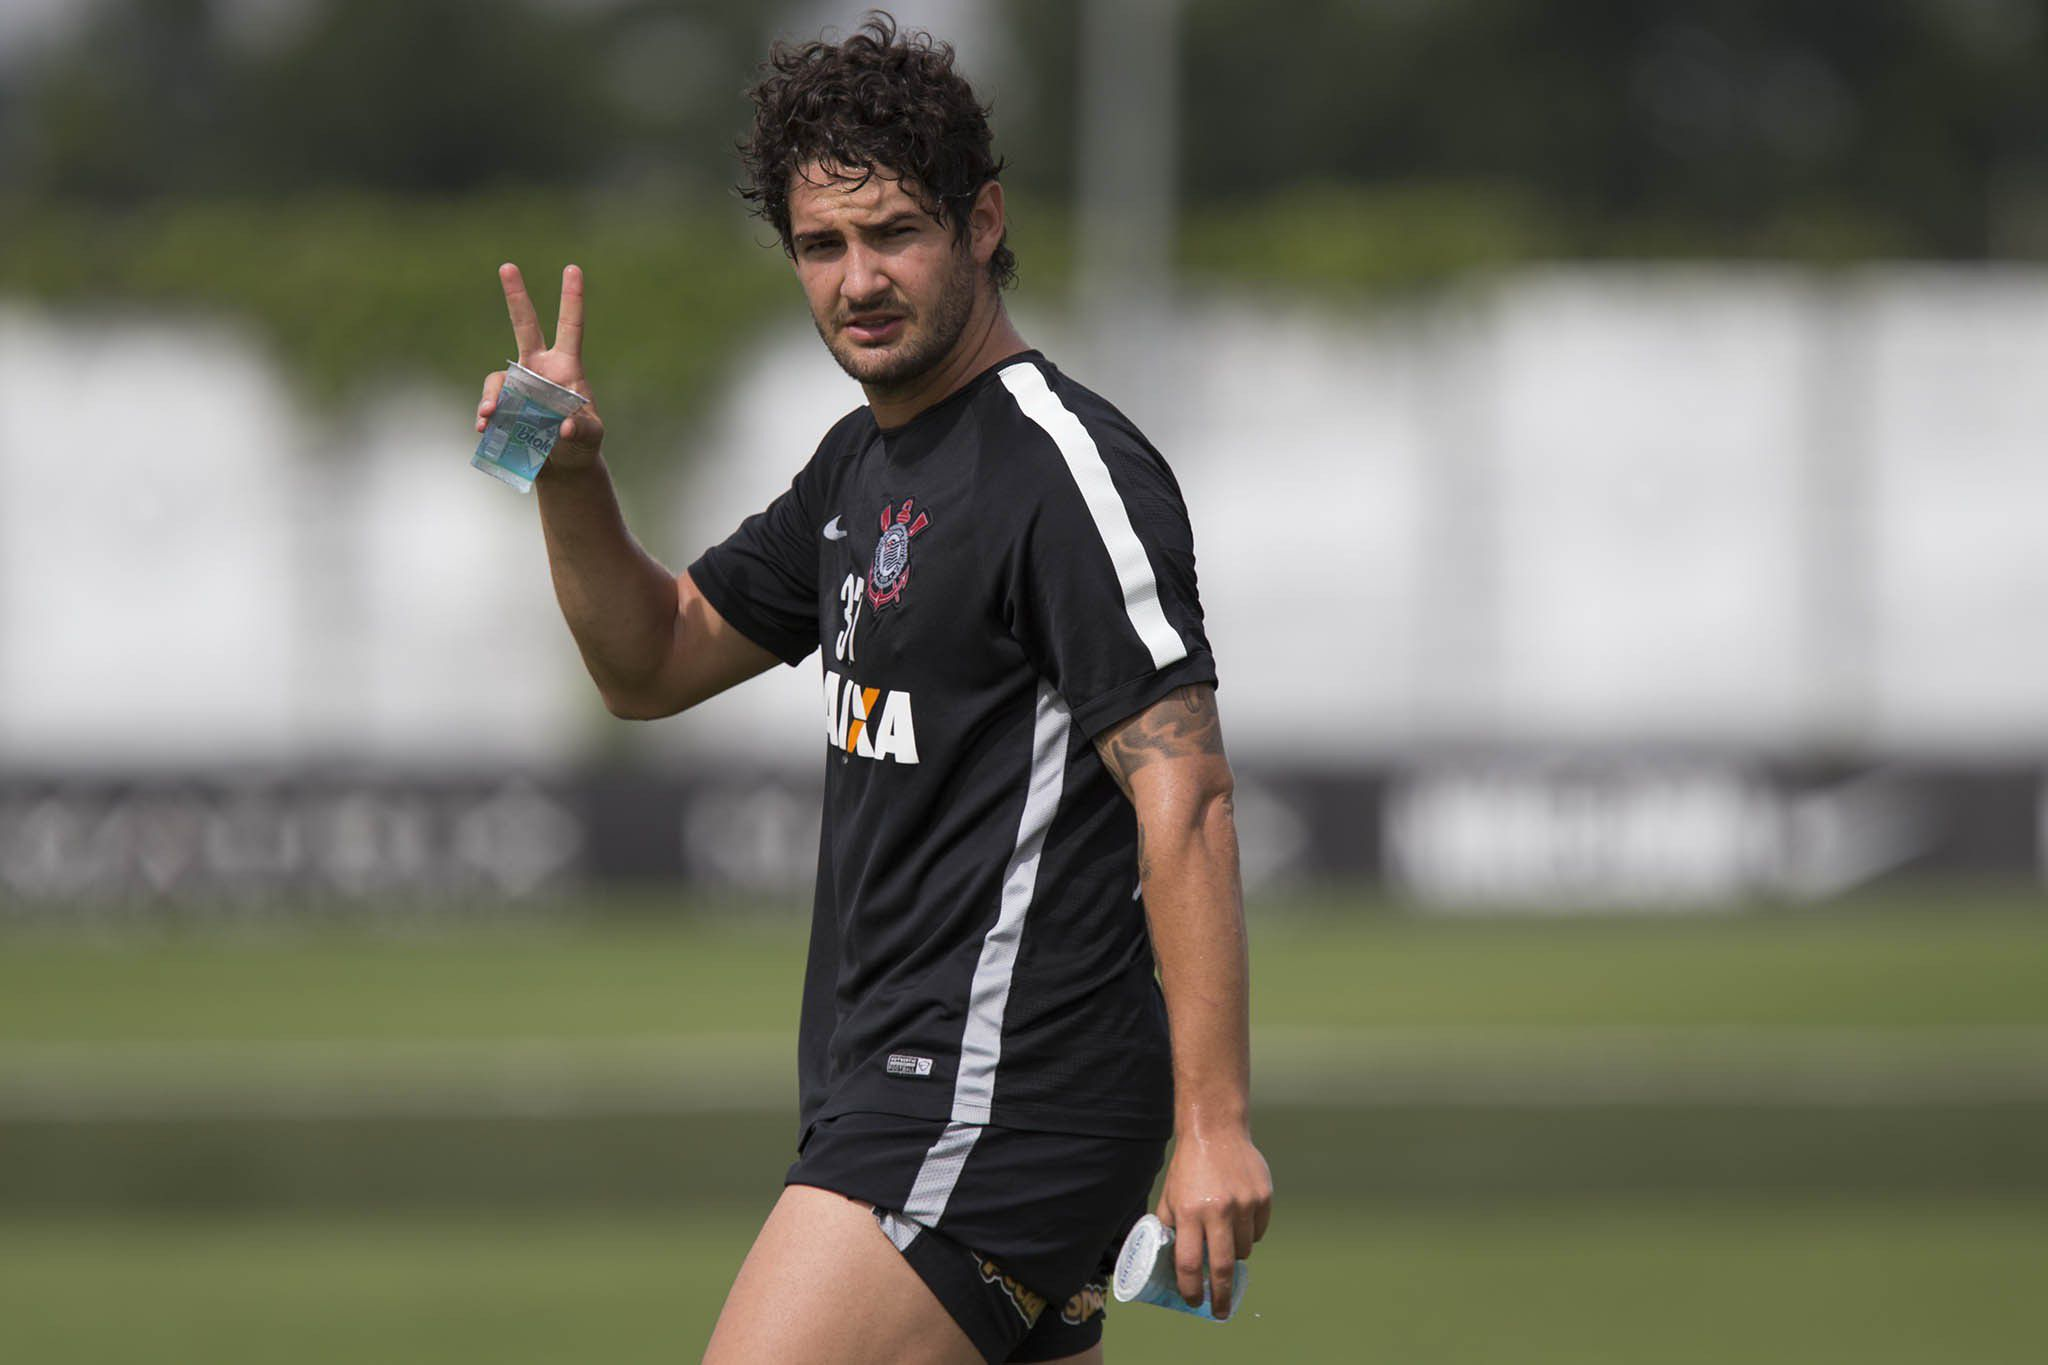 Alexandre Pato Photos